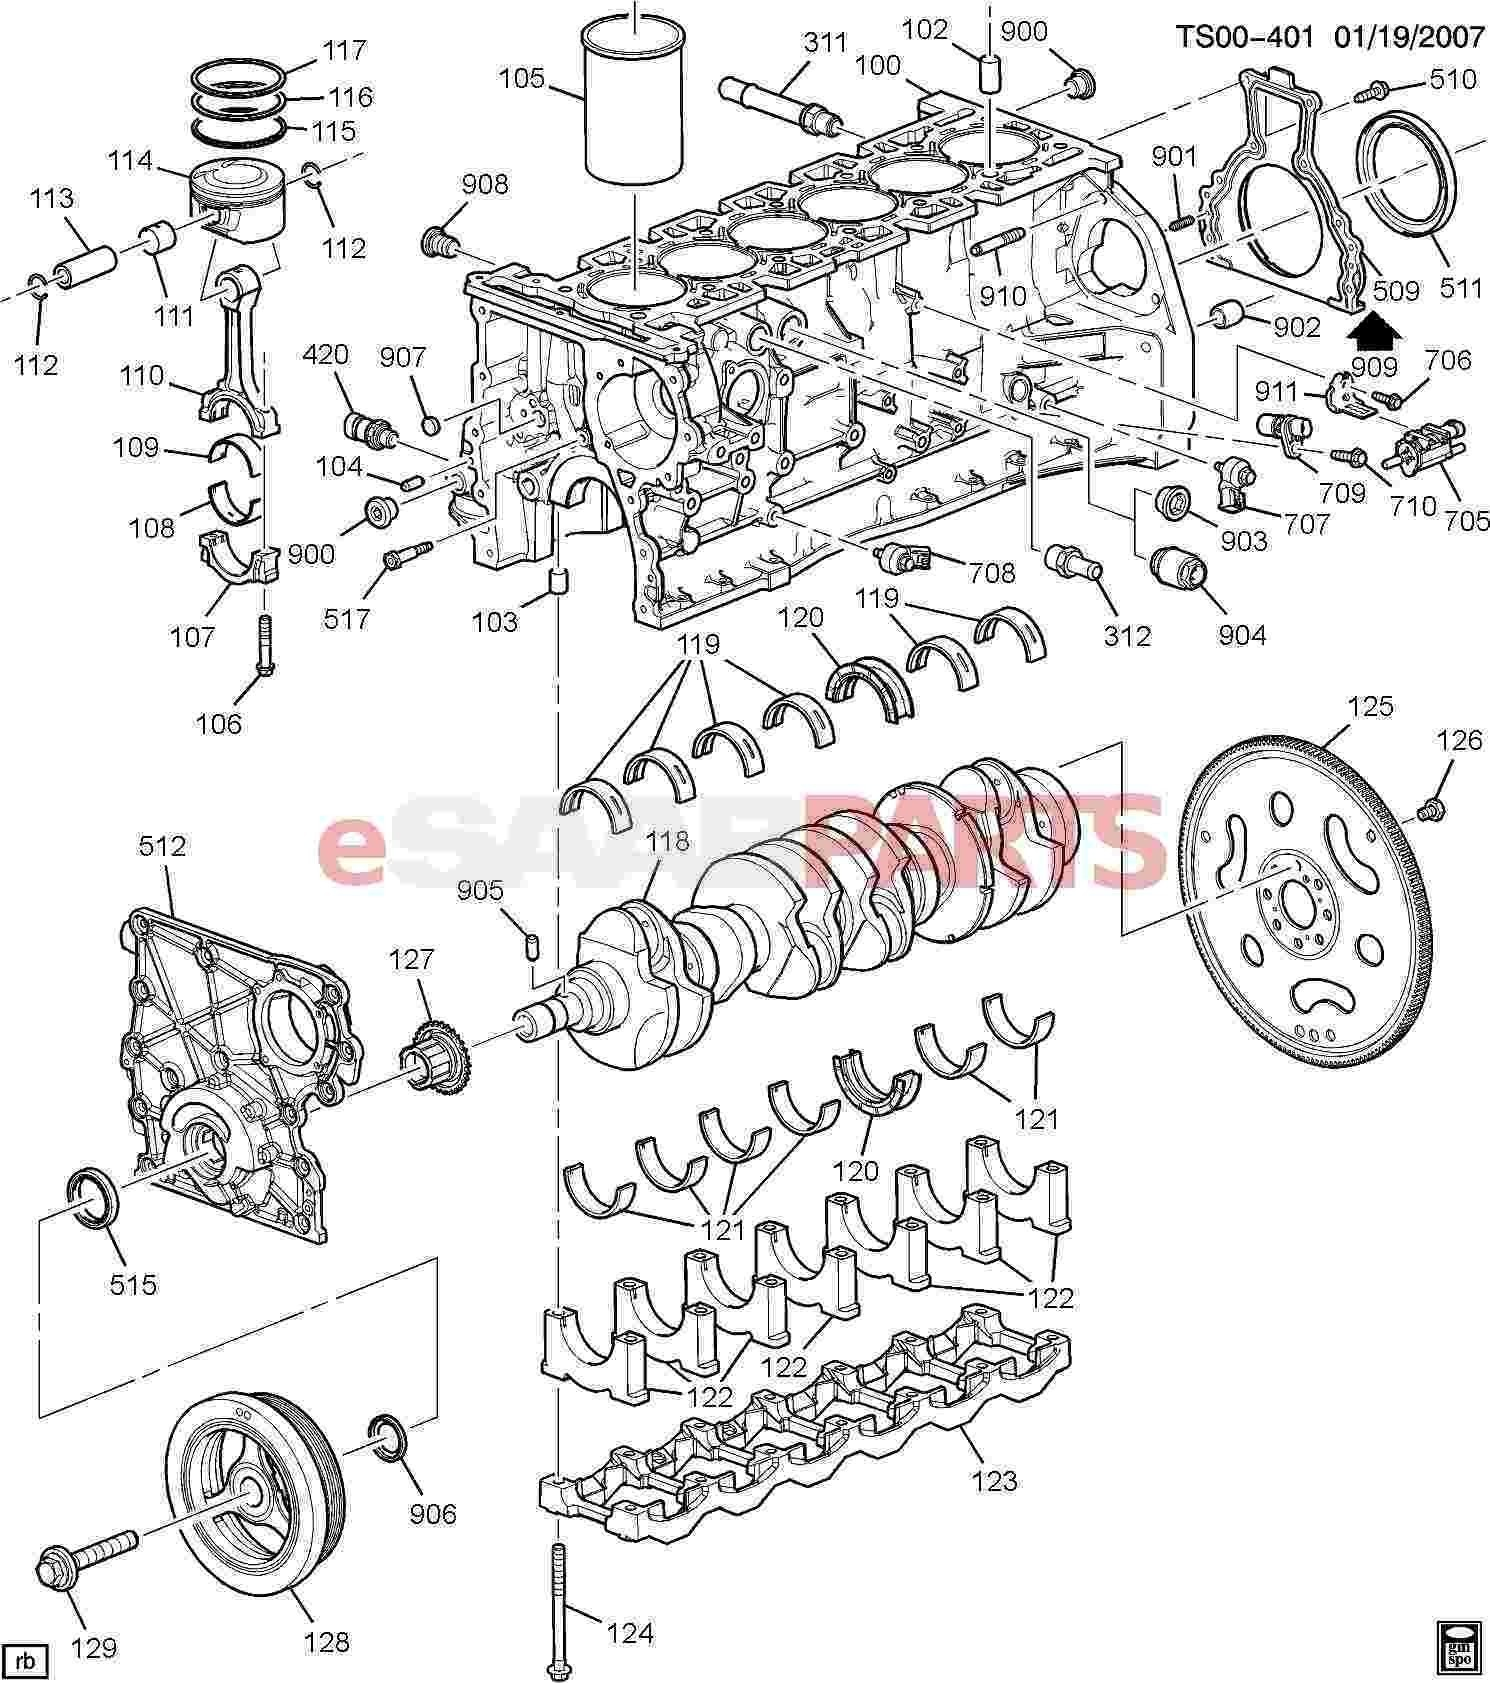 Under the Car Hood Diagram Car Parts Labeled Diagram Of Under the Car Hood Diagram Diagram Brake System Car Car Brake Diagram Rear Brake Drum